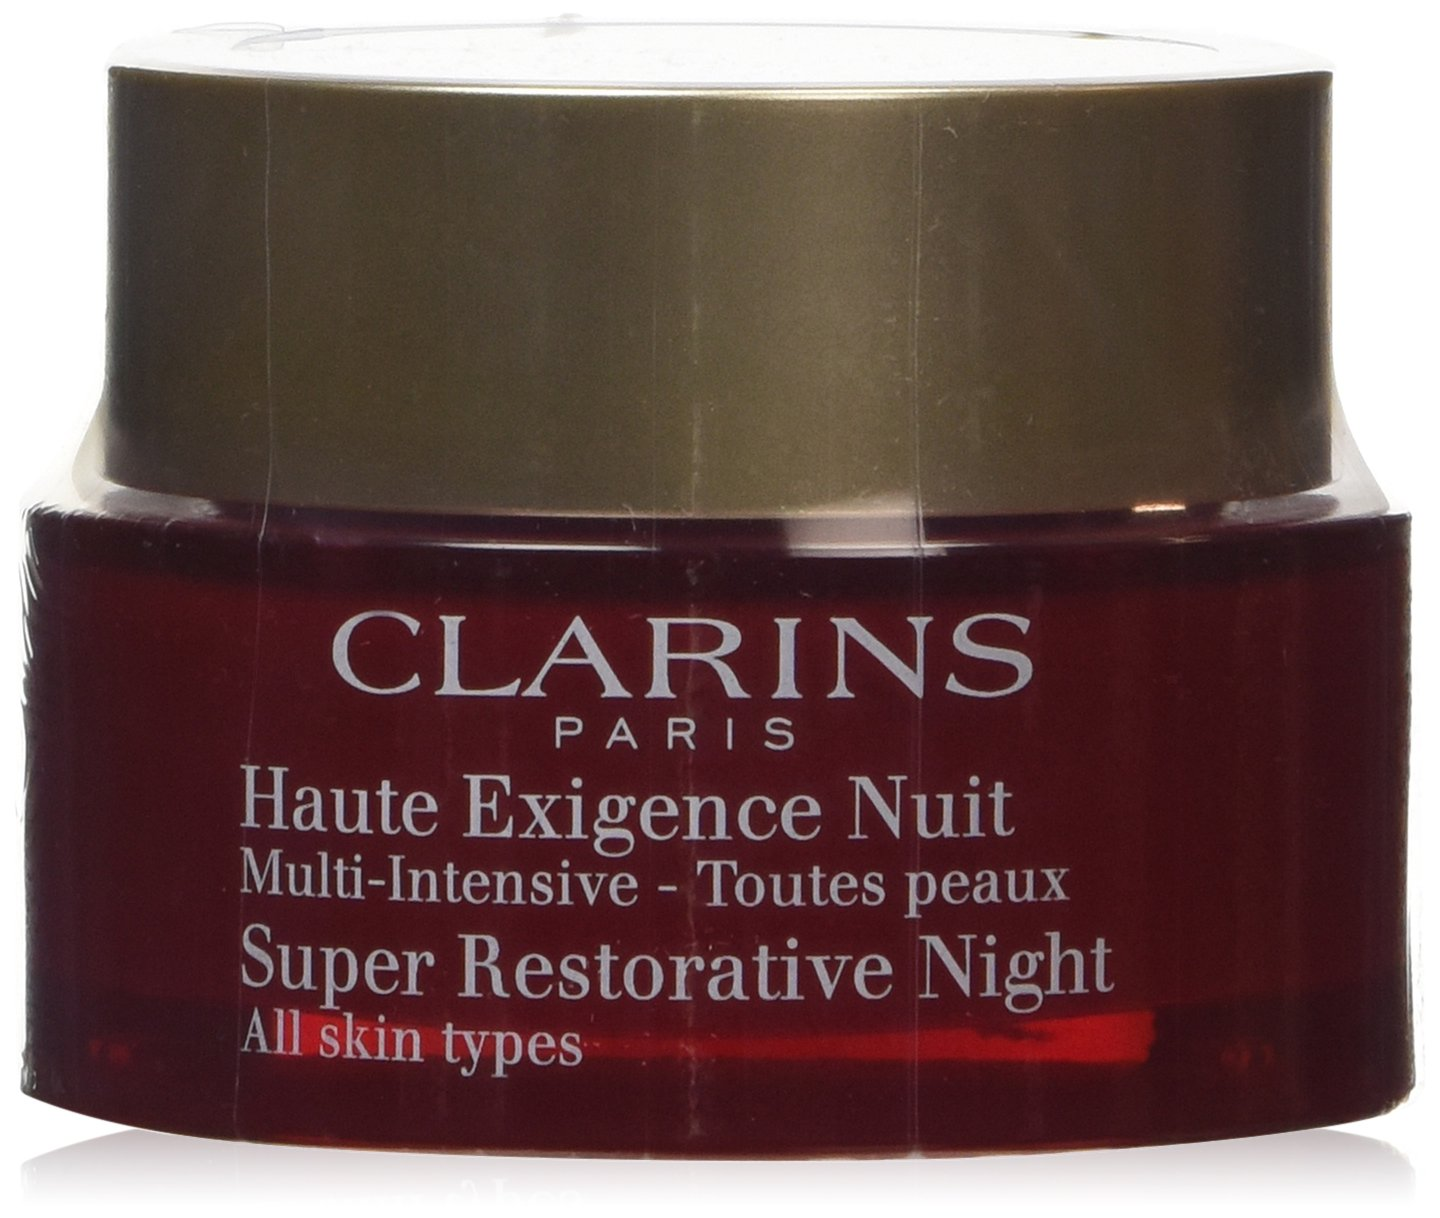 Clarins Super Restorative Night Cream for Unisex, 1.6 Ounce Universal Perfumes 3380811097107 CLA109710_-50ML